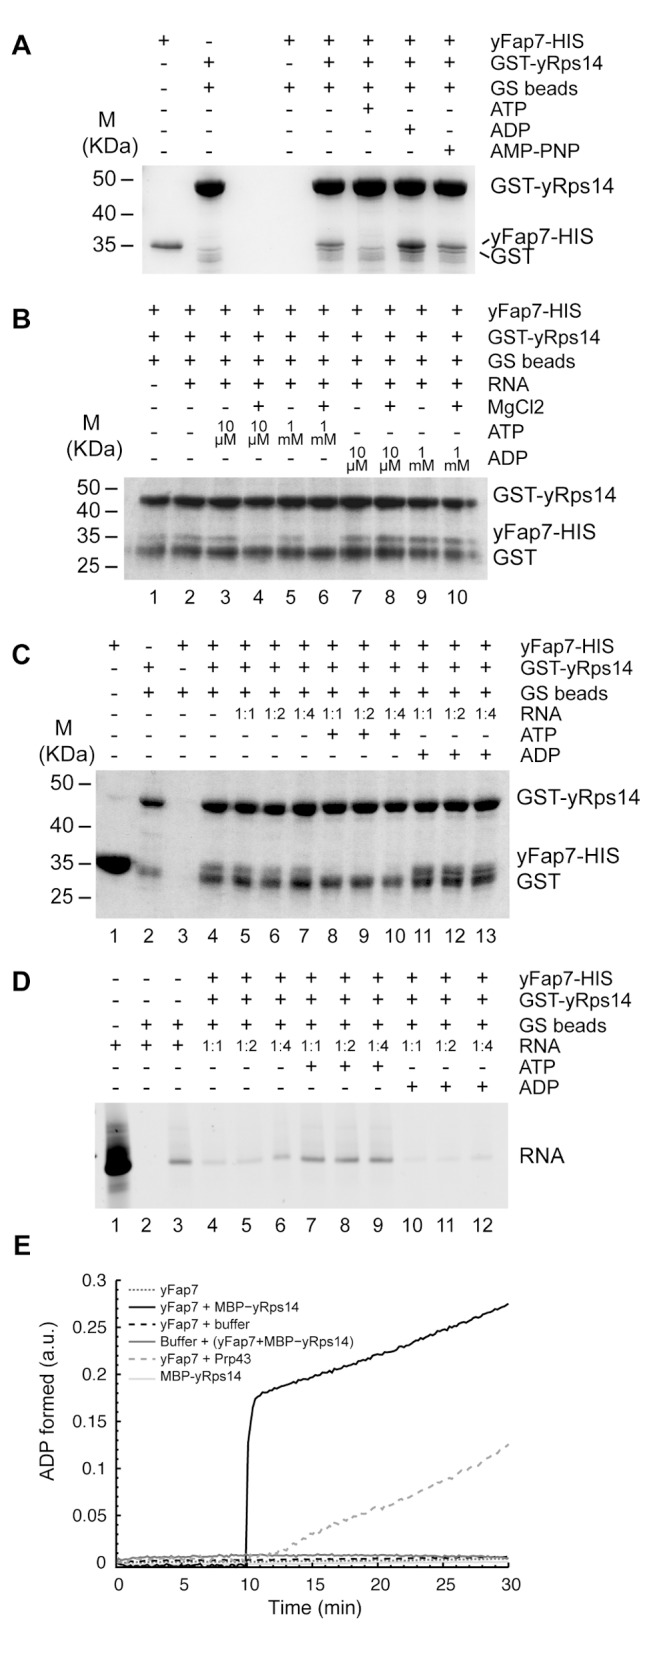 Fap7 ATPase activity regulates its association with Rsp14. Interaction between yFap7 and GST-Rps14 was tested by pulldown experiments. (A) Interaction of yFap7 with GST-Rps14 was tested by addition of 800 pmoles of yFap7 on GST-yRps14 beads resuspended in 1 ml of IP buffer. Effect of addition of ATP, ADP, or AMP-PNP at 1 mM final concentration in the presence of MgCl2 (5 mM) was tested. Protein associated with the beads was analyzed by Coomassie staining. For input controls, 10% of Fap7 (80 pmoles) and the same quantity of Rps14 beads used for the IP were loaded. (B) Effects of magnesium and nucleotide concentration were tested by using the same strategy in the presence of RNA (cf., D). Two quantities of nucleotides were used: 1 µmole (1 mM) or 10 nmole (10 µM). Experiments were done in the presence or in the absence of 5 mM MgCl 2 . (C) Association of GST-yRps14 to RNA was assessed by a competition experiment using a different ratio between RNA and yFap7: 800 pmole Fap7 with 800 pmole RNA (1∶1), 400 pmole Fap7 with 800 pmole RNA (1∶2), and 200 pmole Fap7 with 800 pmole RNA (1∶4). Nucleotides were added at 1 mM final. Protein associated with the beads was analyzed by Coomassie staining. For input controls, 10% of Fap7 (80 pmoles) and the same quantity of Rps14 beads used for the IP were loaded. (D) Same as in C, but this time the RNA counterpart was followed on Urea-acrylamide gel after SYBR Safe staining. For input control, 80 pmole of RNA was loaded. (E) ATPase activity of yFap7 (black points) was followed by a coupled enzyme assay. Effect of addition after 10 min of MBP-yRps14 (black line), buffer (dotted dark line), or Prp43 (dotted dark grey line) was also monitored. In parallel, ATPase activity of MBP-yRps14 (light grey line) alone and the preformed complex yFap7–yRps14 (dark grey line) was also tested.